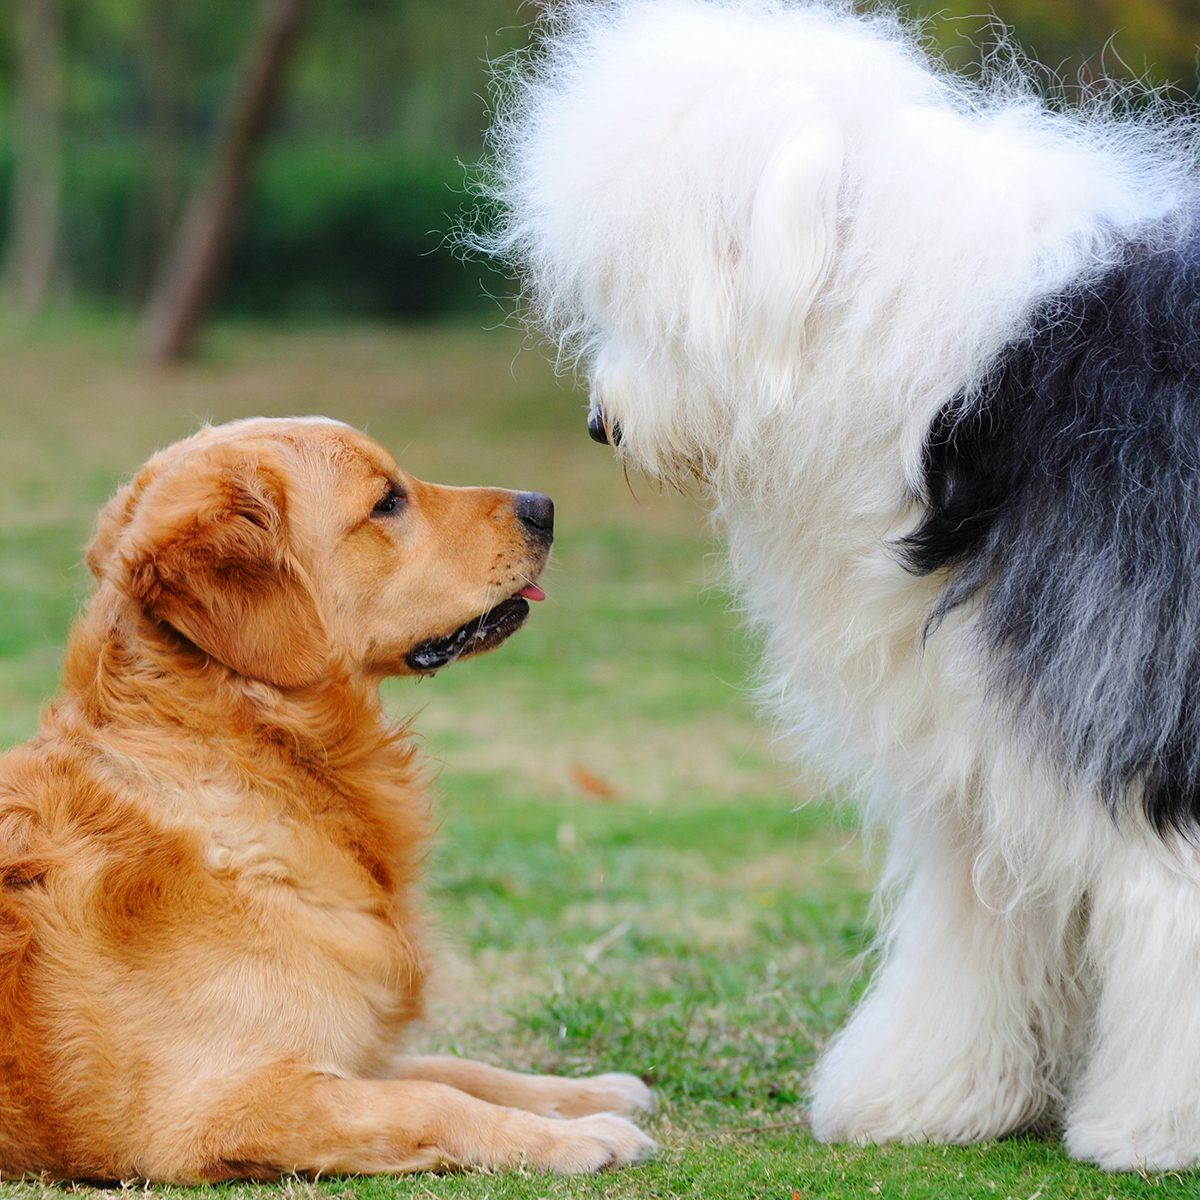 Golden retriever laying down and looking up at a standing English sheepdog